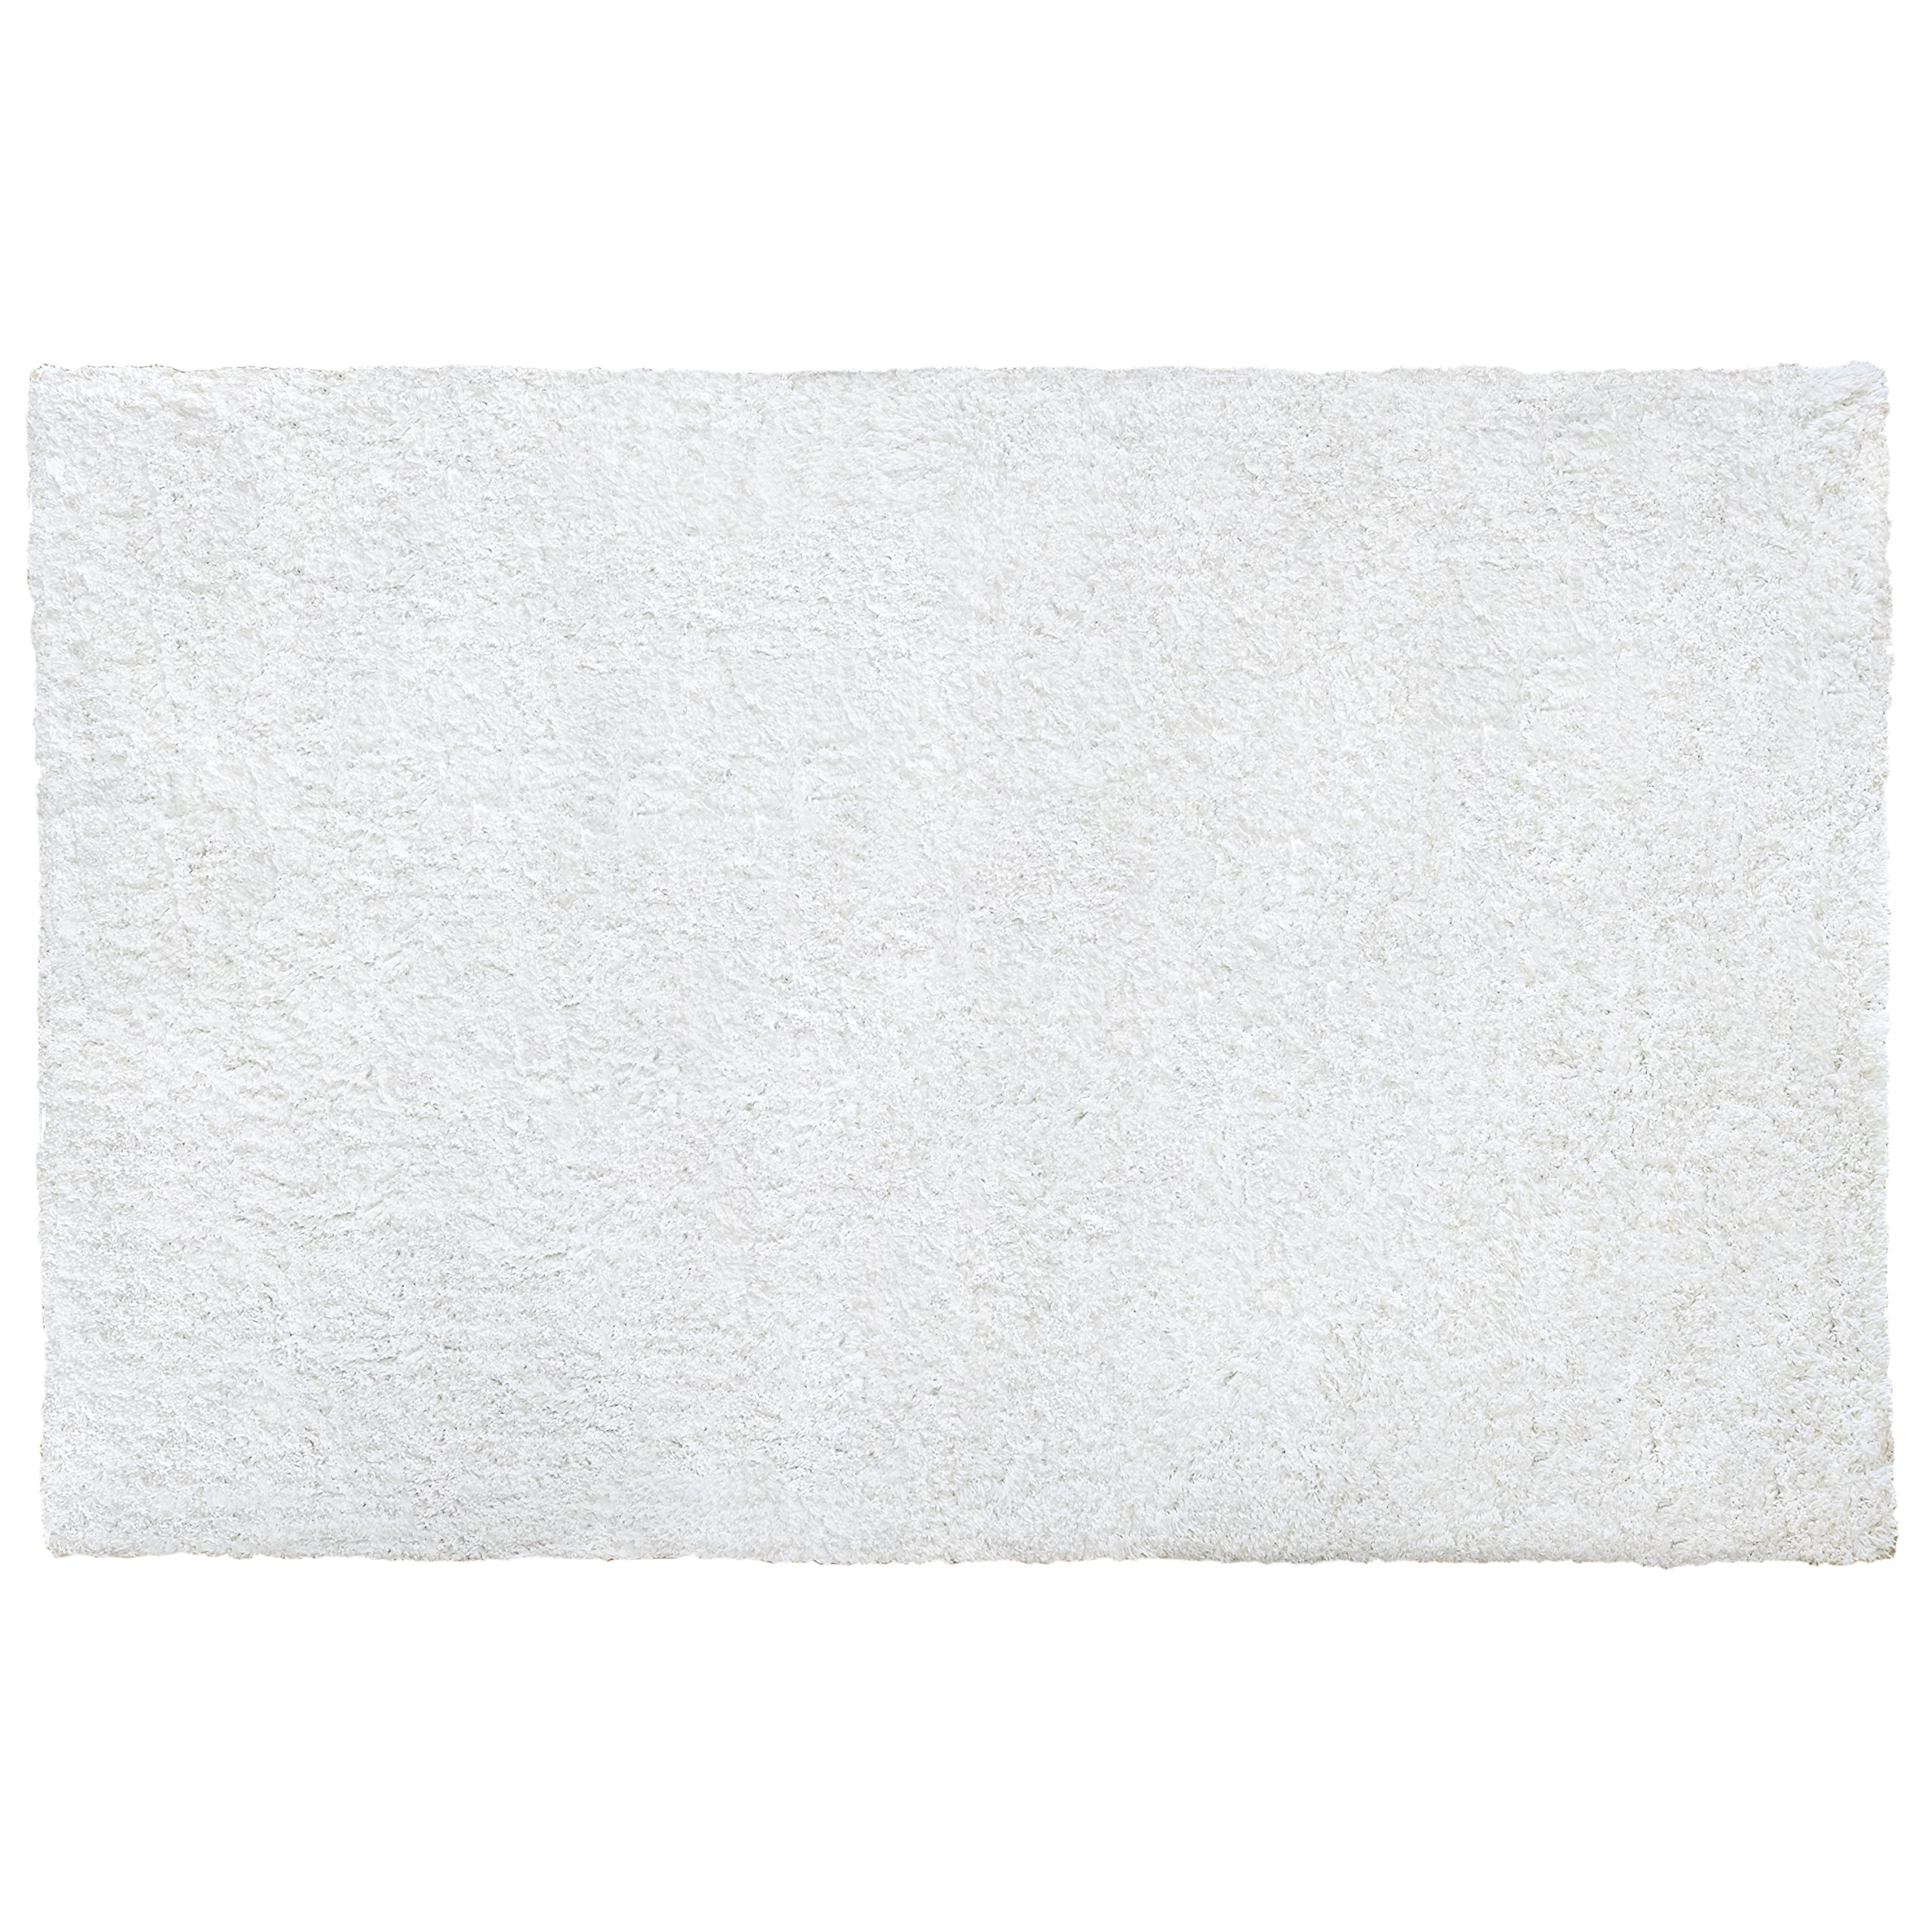 Little Love by NoJo Shag Nursery Rug, Solid White, 3'9'' x 5'9''